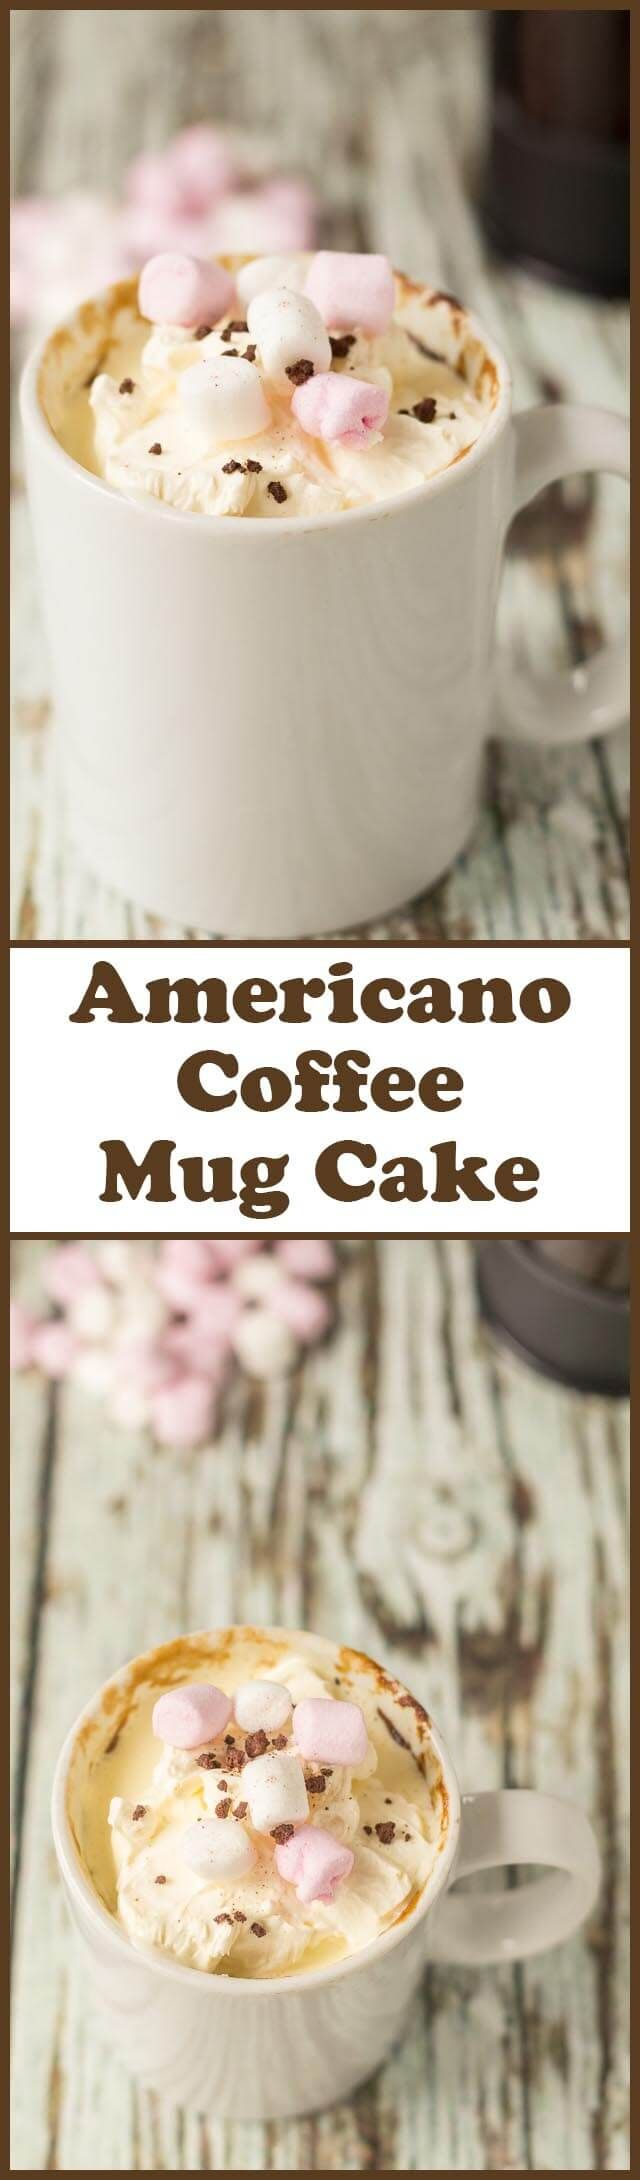 Americano Coffee Mug Cake Recipe Coffe mug cake, Mug